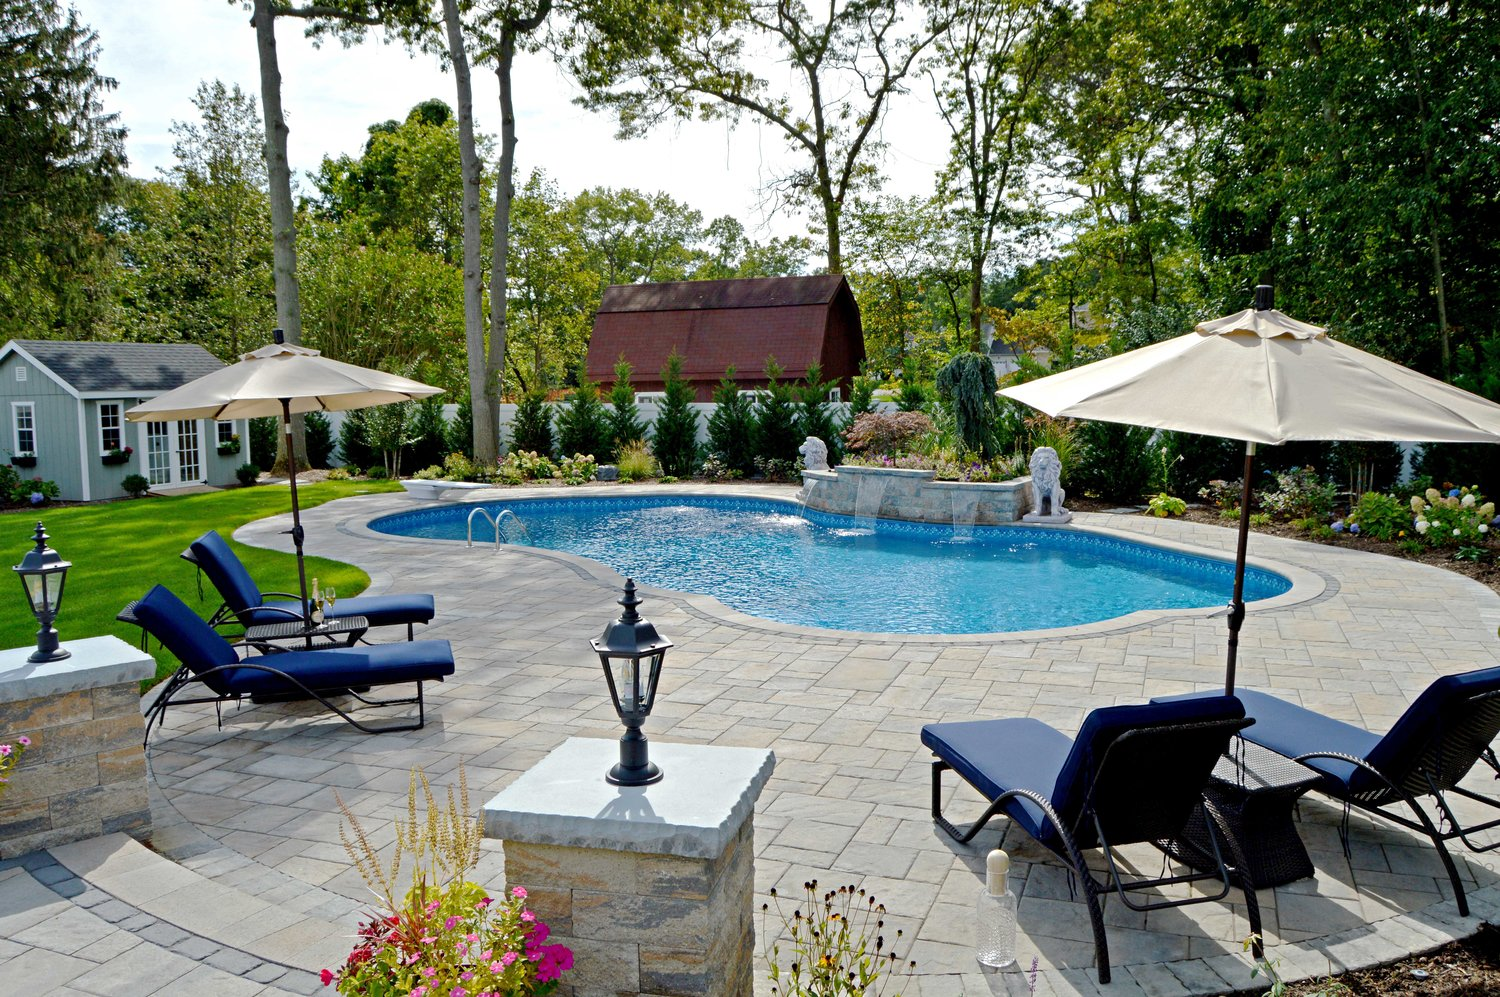 Illuminate Your Pool Patio With Landscape Lighting in Plainview, NY